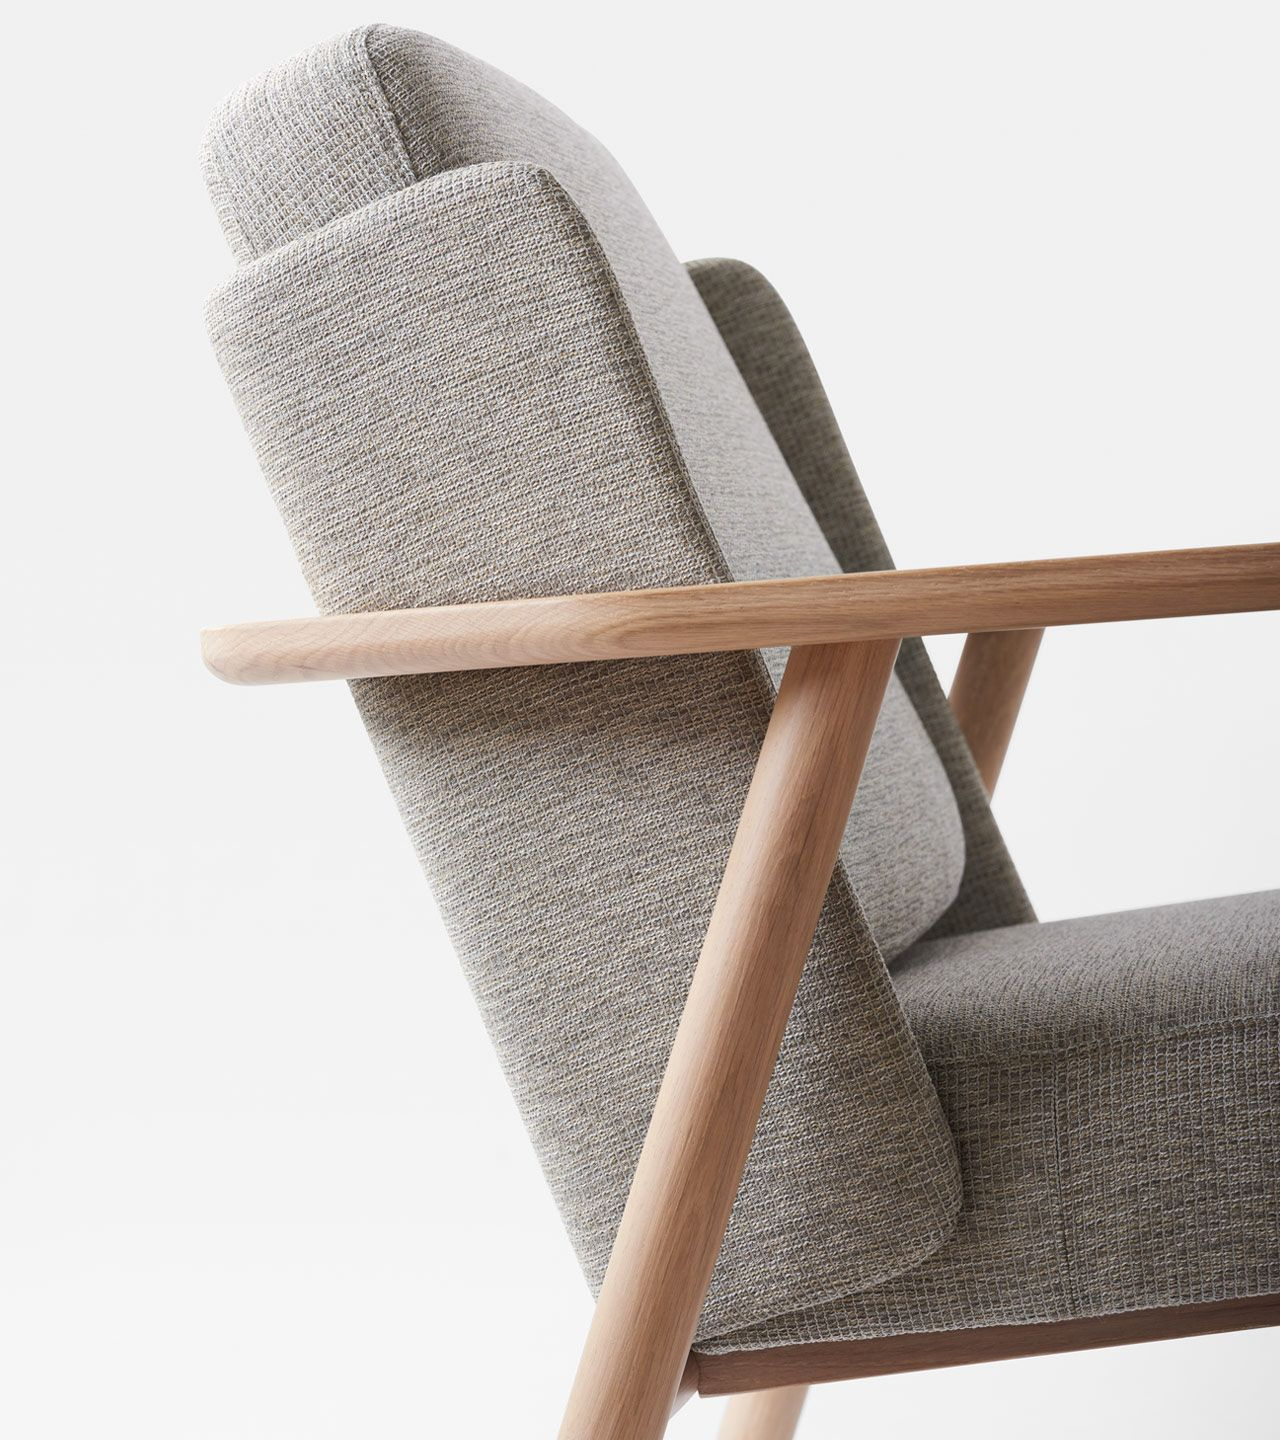 Magnificent Studio Tk Brand Launch By Tolleson Design In 2019 Ibusinesslaw Wood Chair Design Ideas Ibusinesslaworg